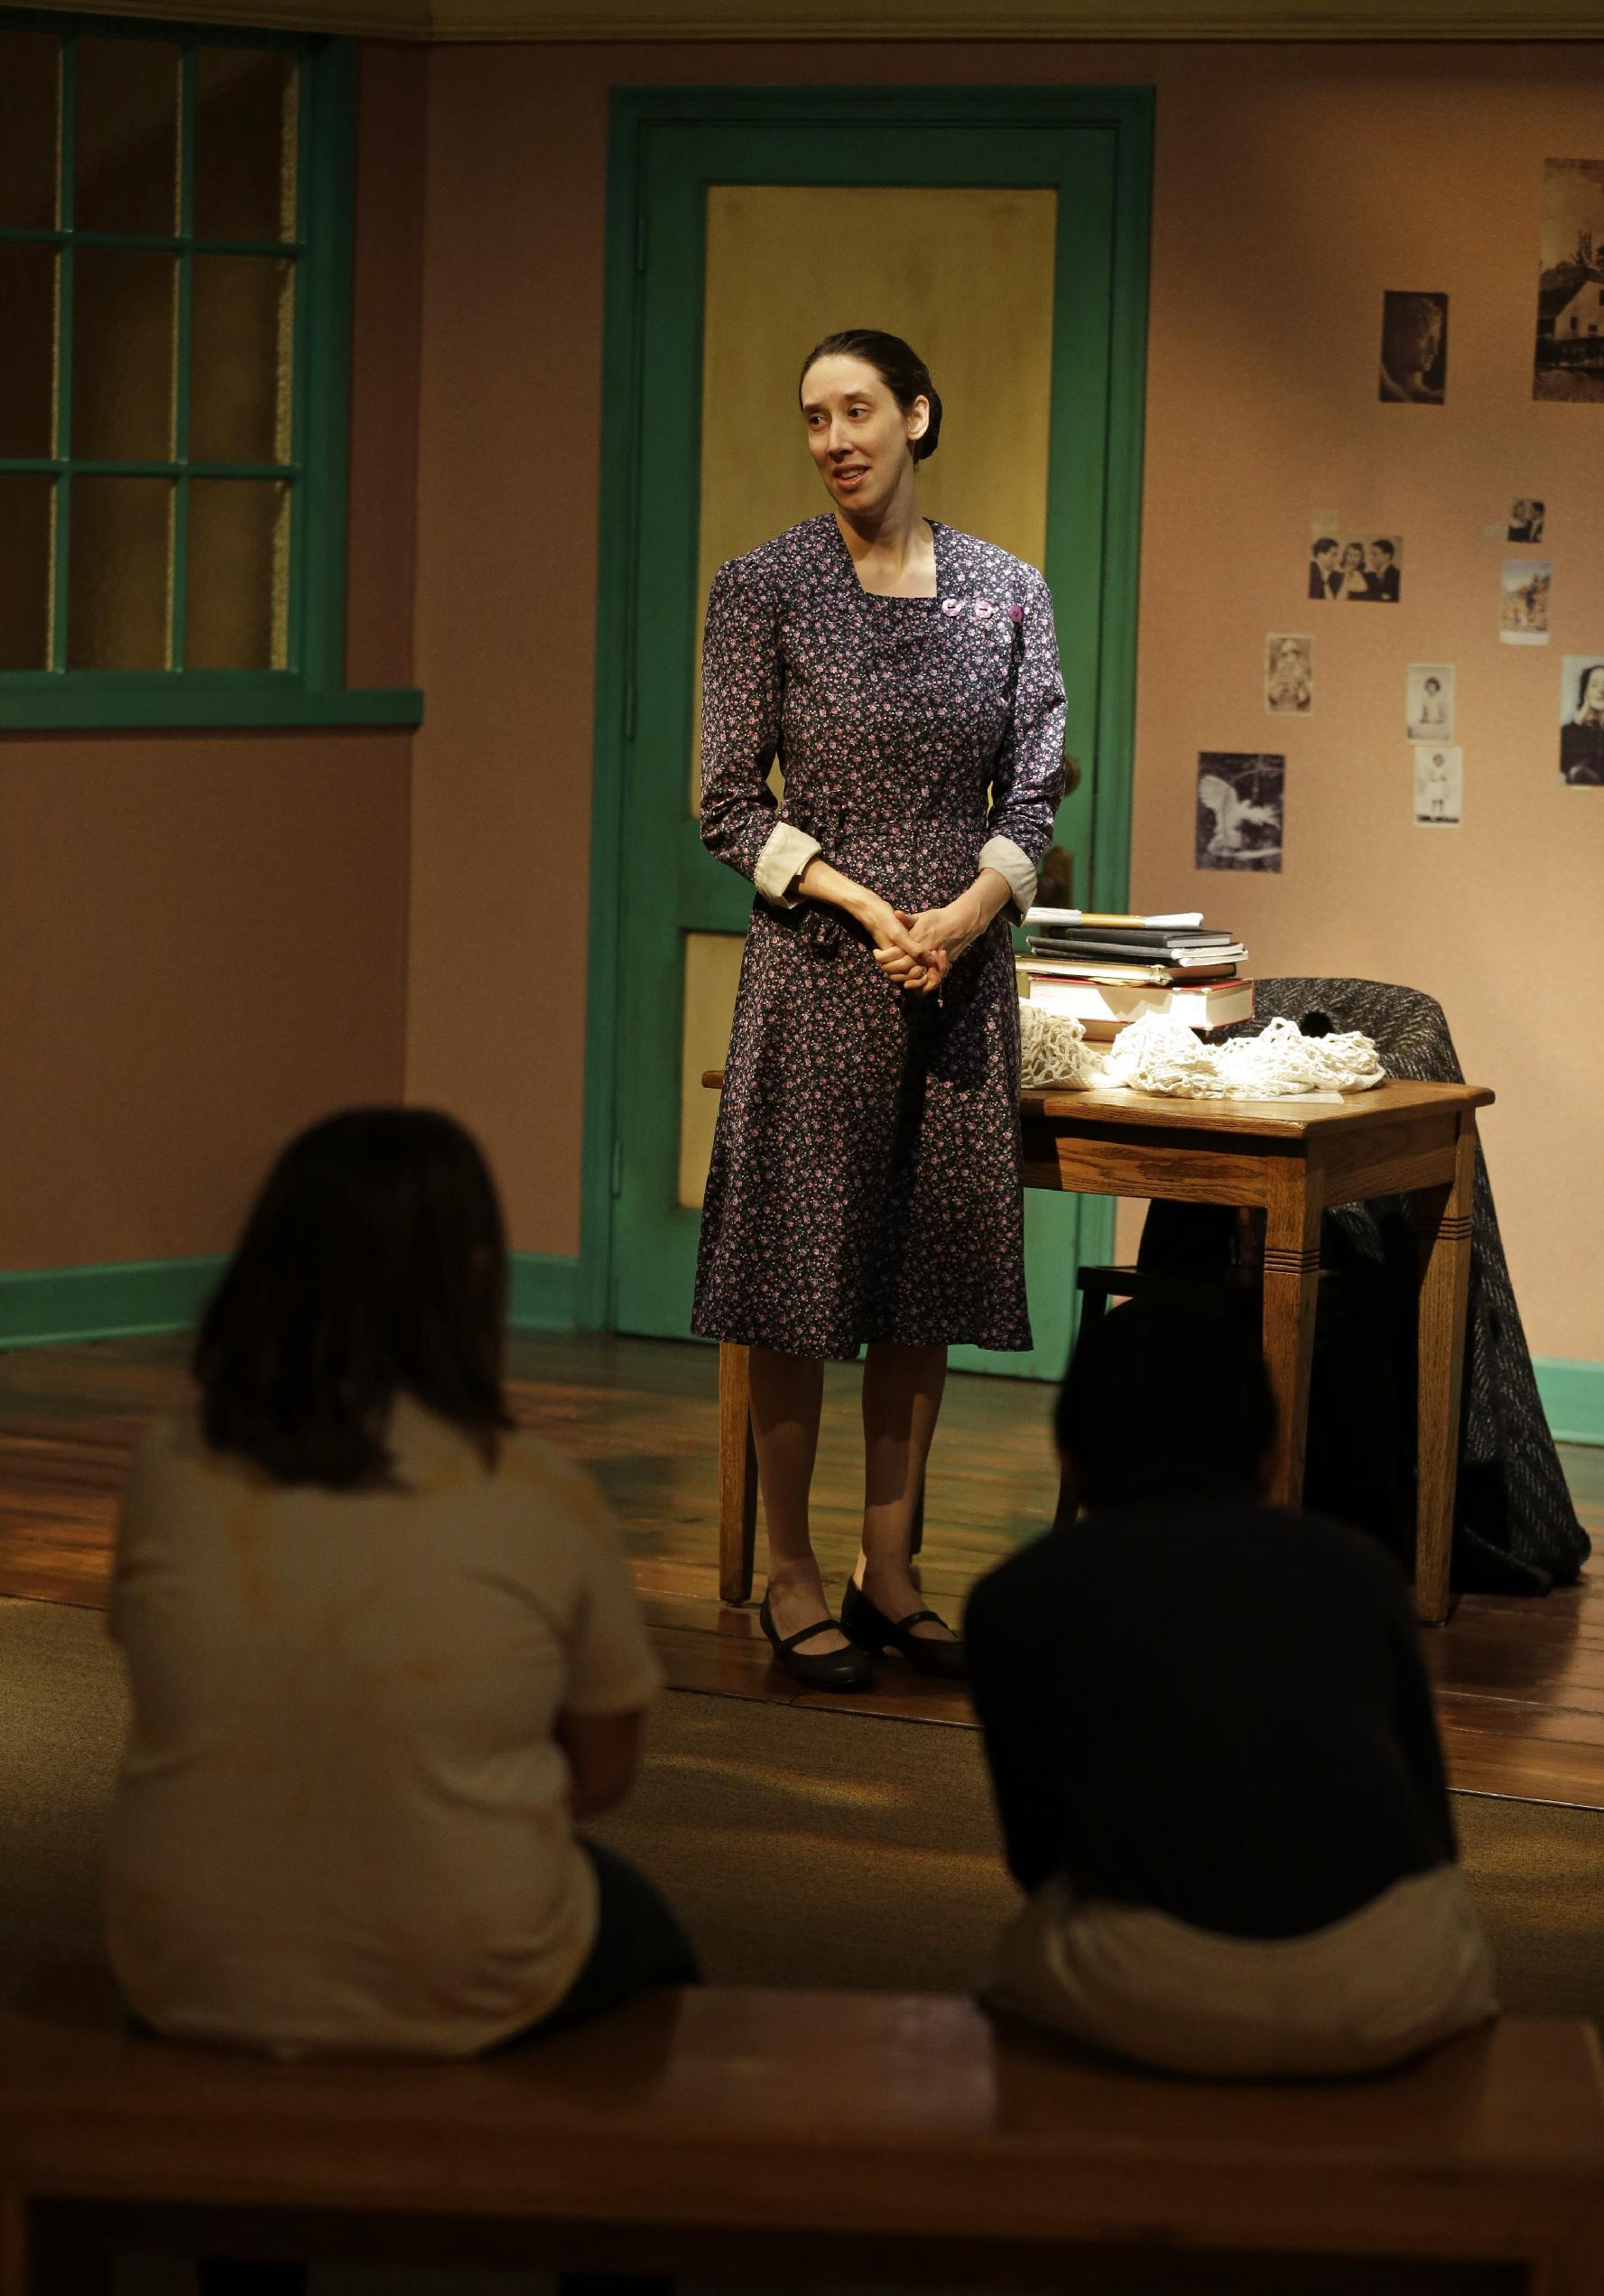 In this Monday, March 18, 2013 photo, actress Julie Mauro portrays Miep Gies, one of Anne Frank's protectors and the woman who preserved her diary, during a performance in an Anne Frank exhibition at the Indianapolis Children's Museum in Indianapolis. Eleven saplings grown from seeds taken from the massive chestnut tree that stood outside the home in which Frank and her family hid are being distributed to museums, schools, parks and Holocaust remembrance centers through a project led by The Anne Frank Center USA. (AP Photo/Michael Conroy) (AP Photo/Michael Conroy)